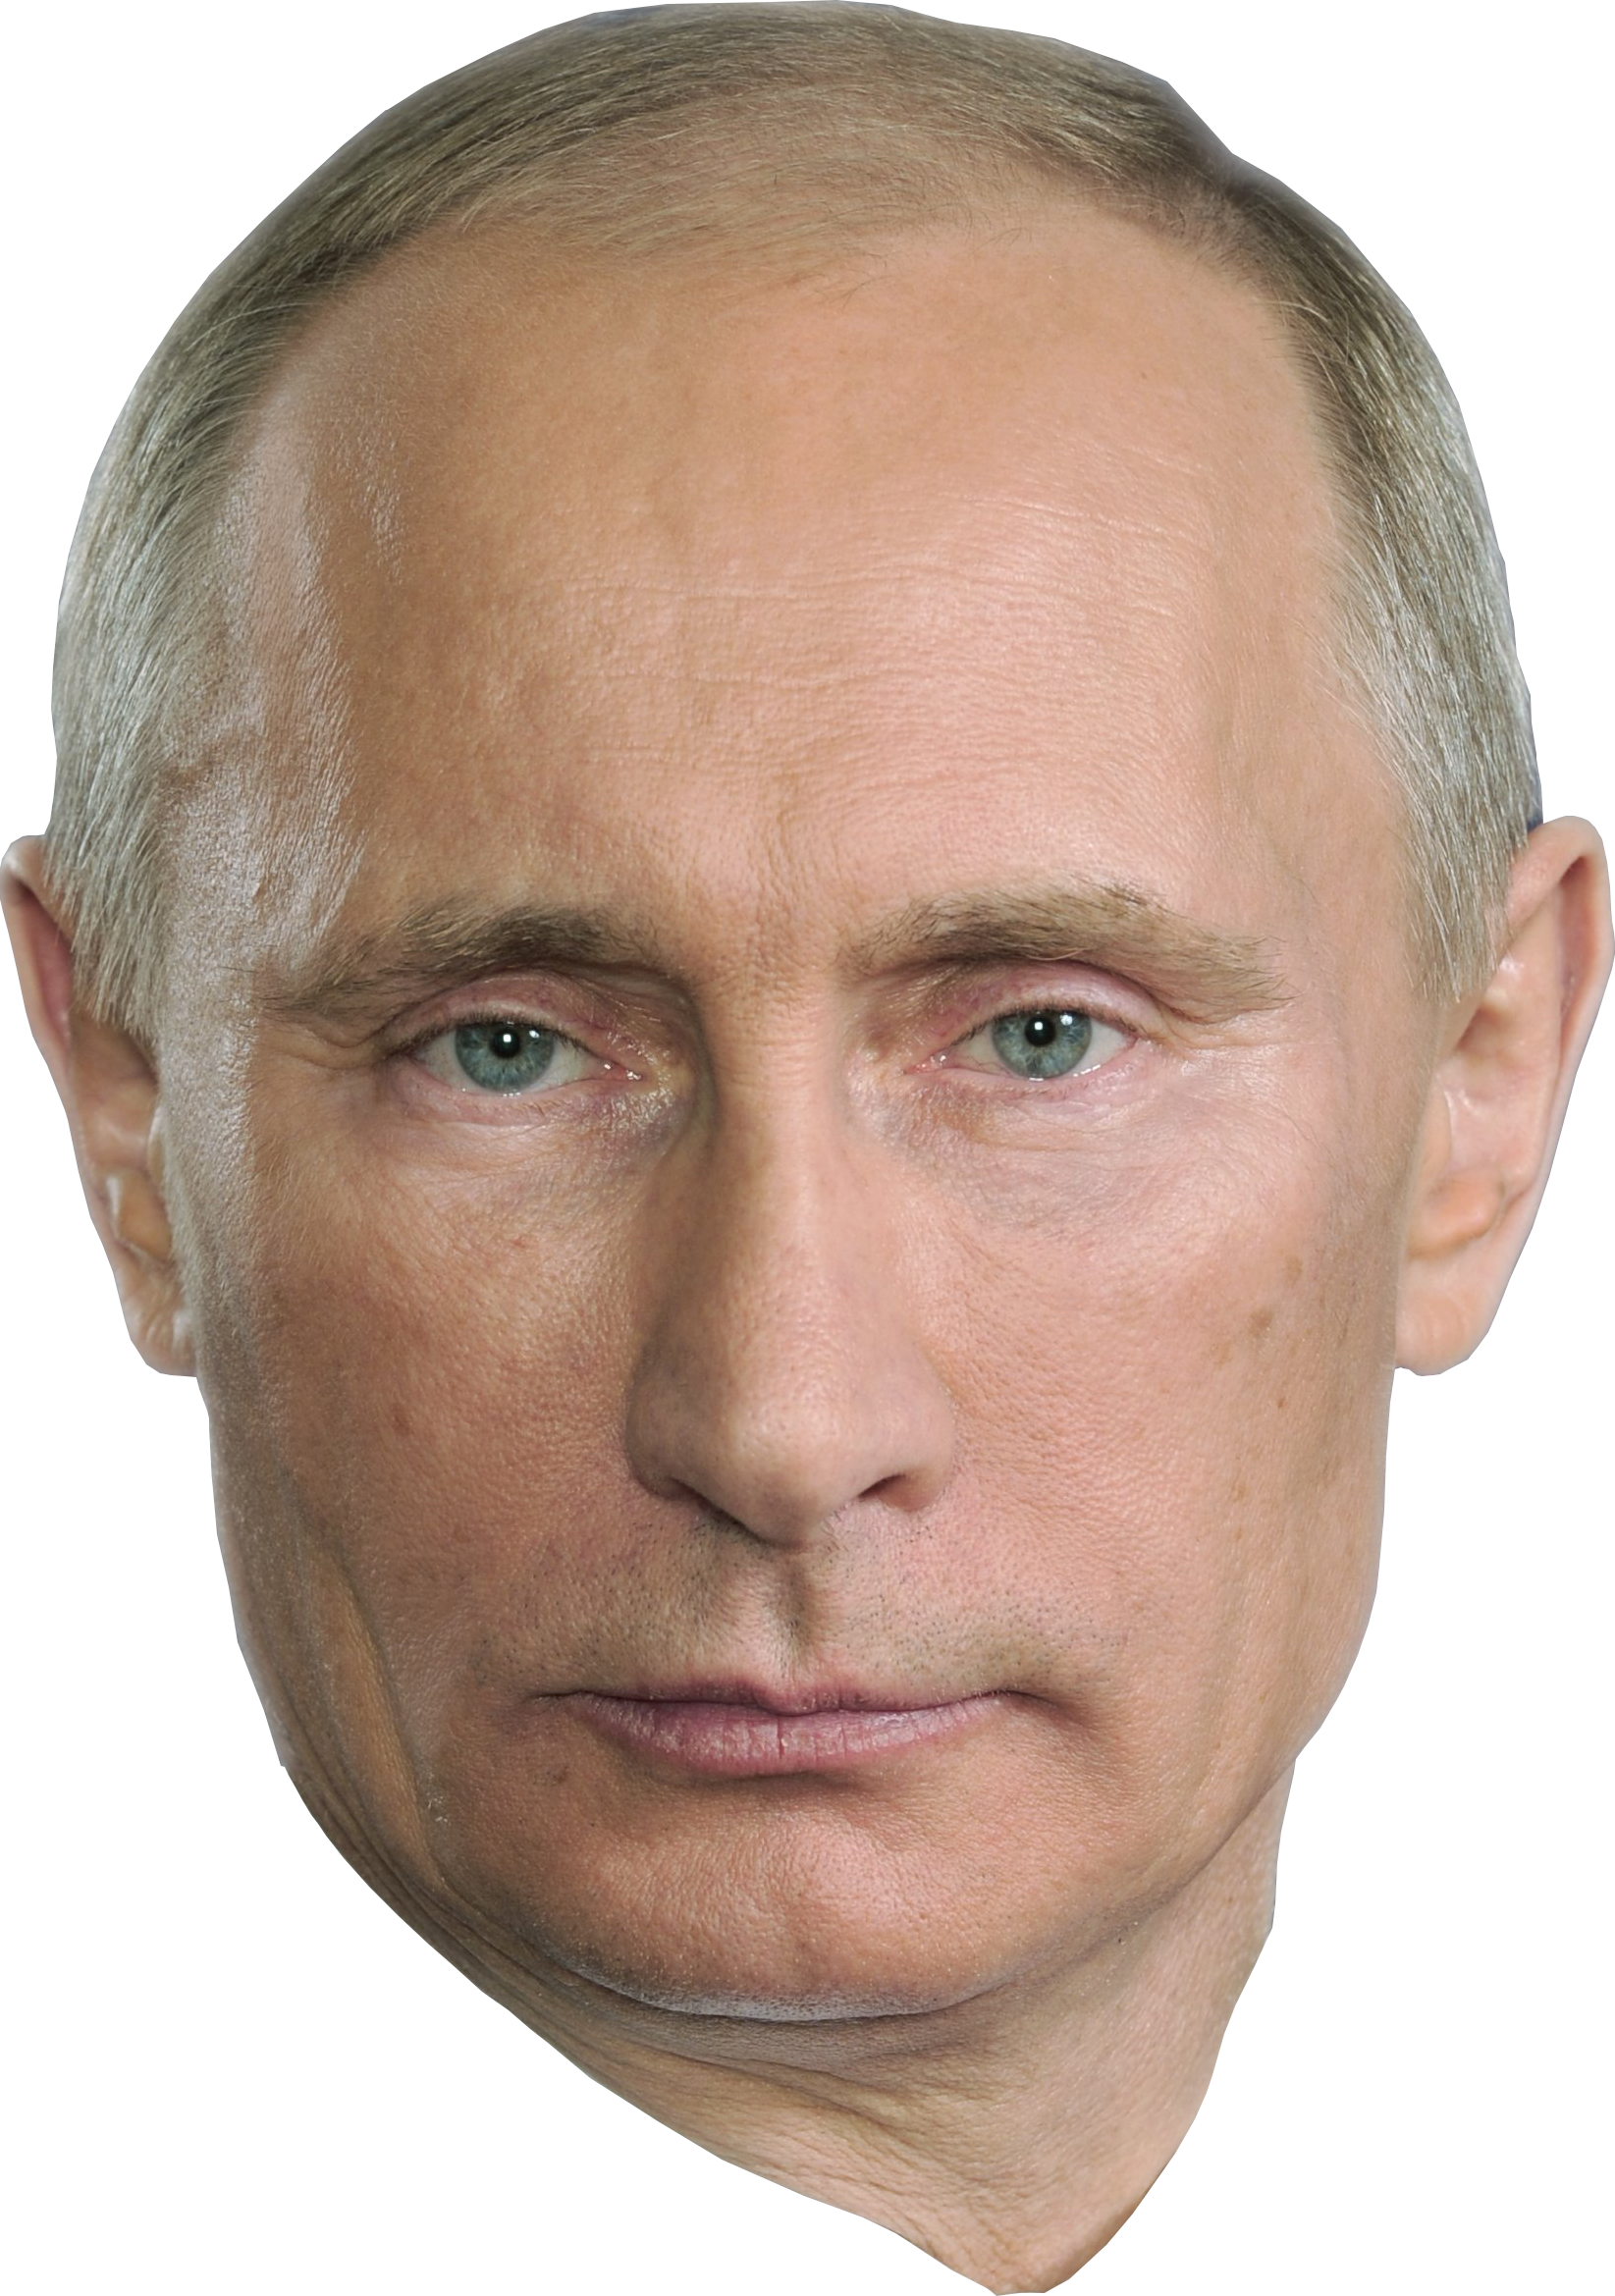 Face HD PNG